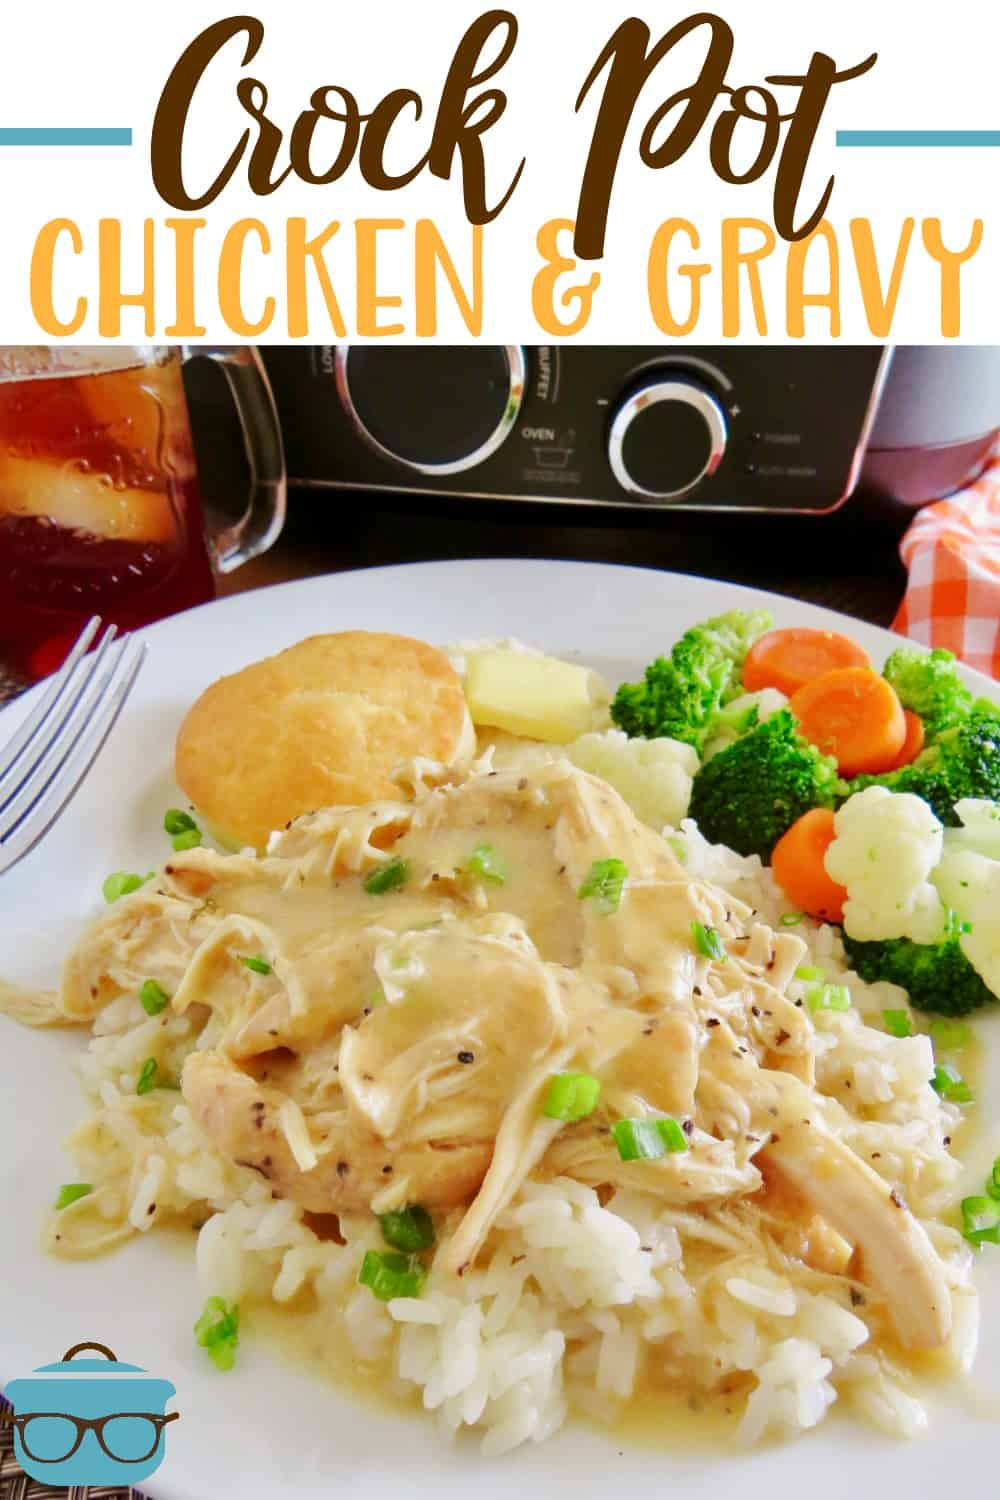 This recipe for Crock Pot Chicken and Gravy is a family favorite. Chicken, gravy mix, cream of chicken, sour cream and seasoning. Delicious and creamy!